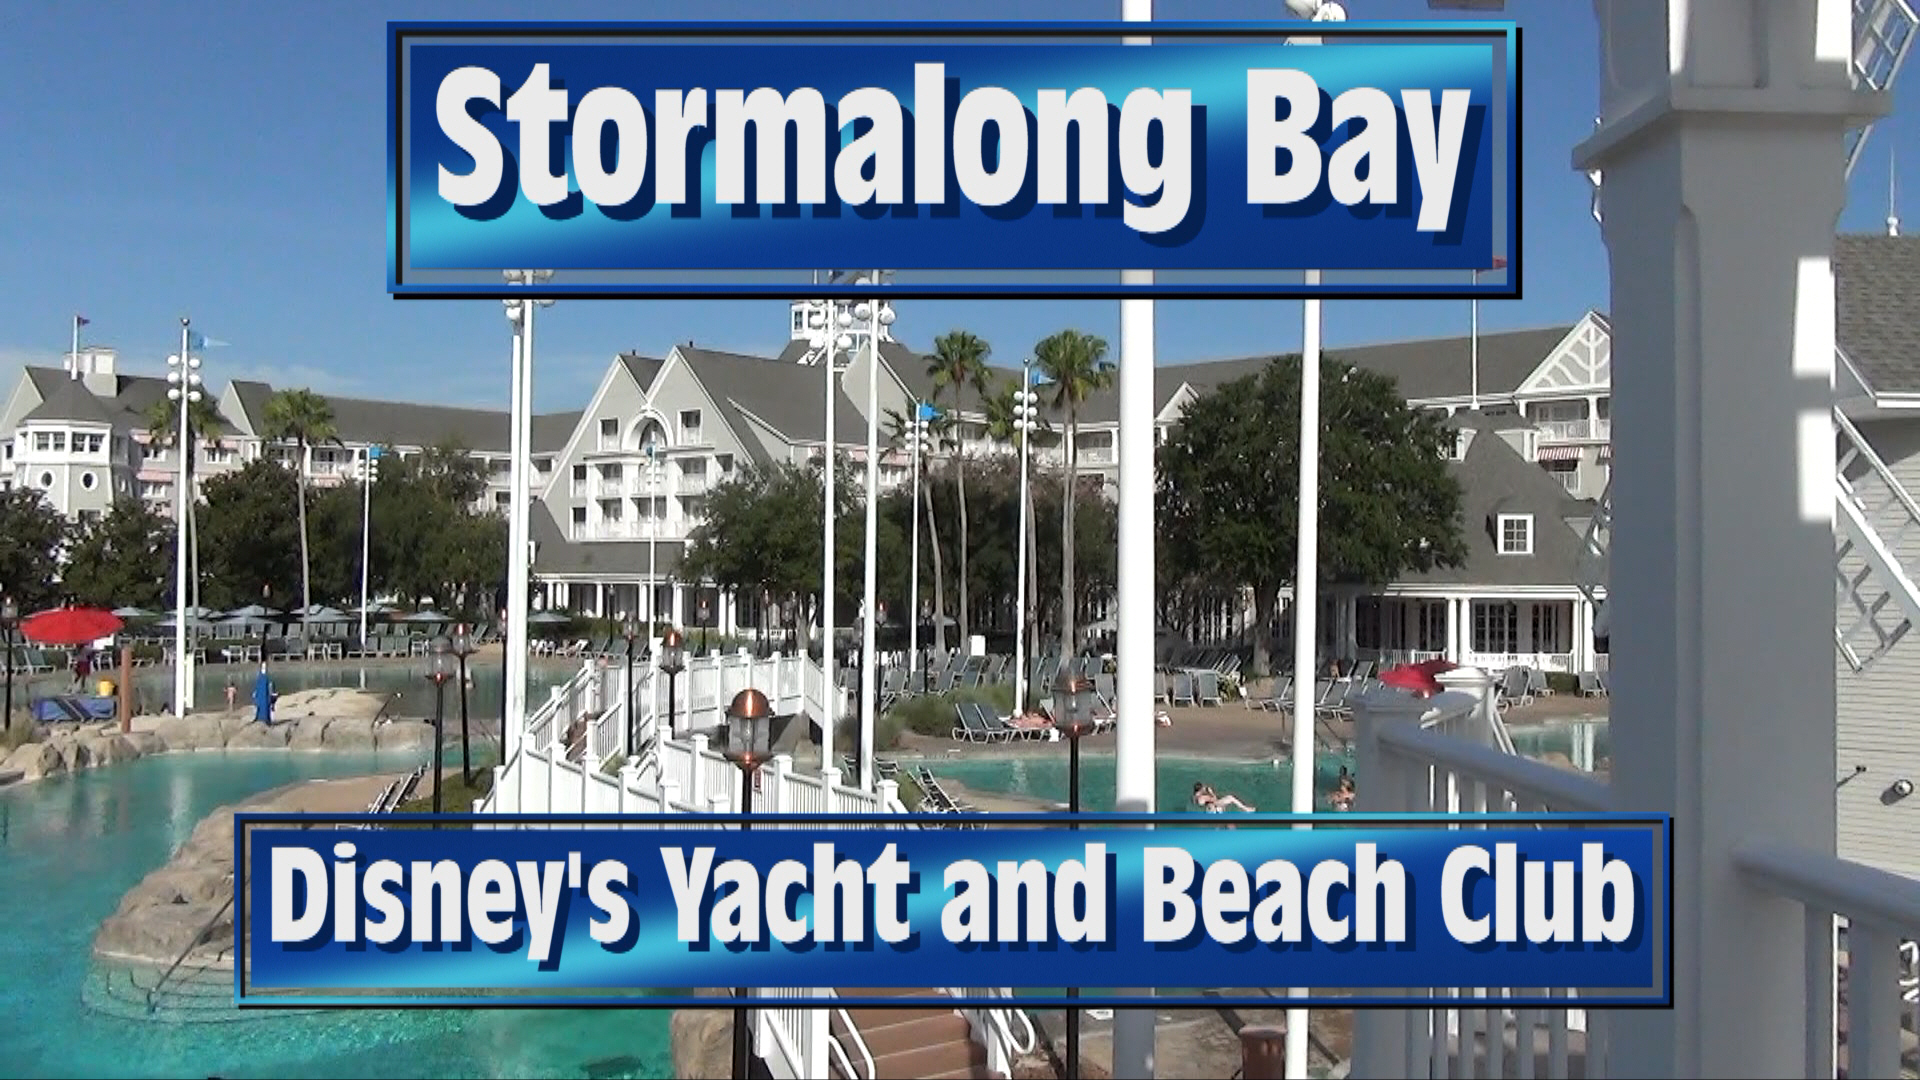 Cool Off with this Tour of Stormalong Bay at Disney's Yacht and Beach Club - VIDEO